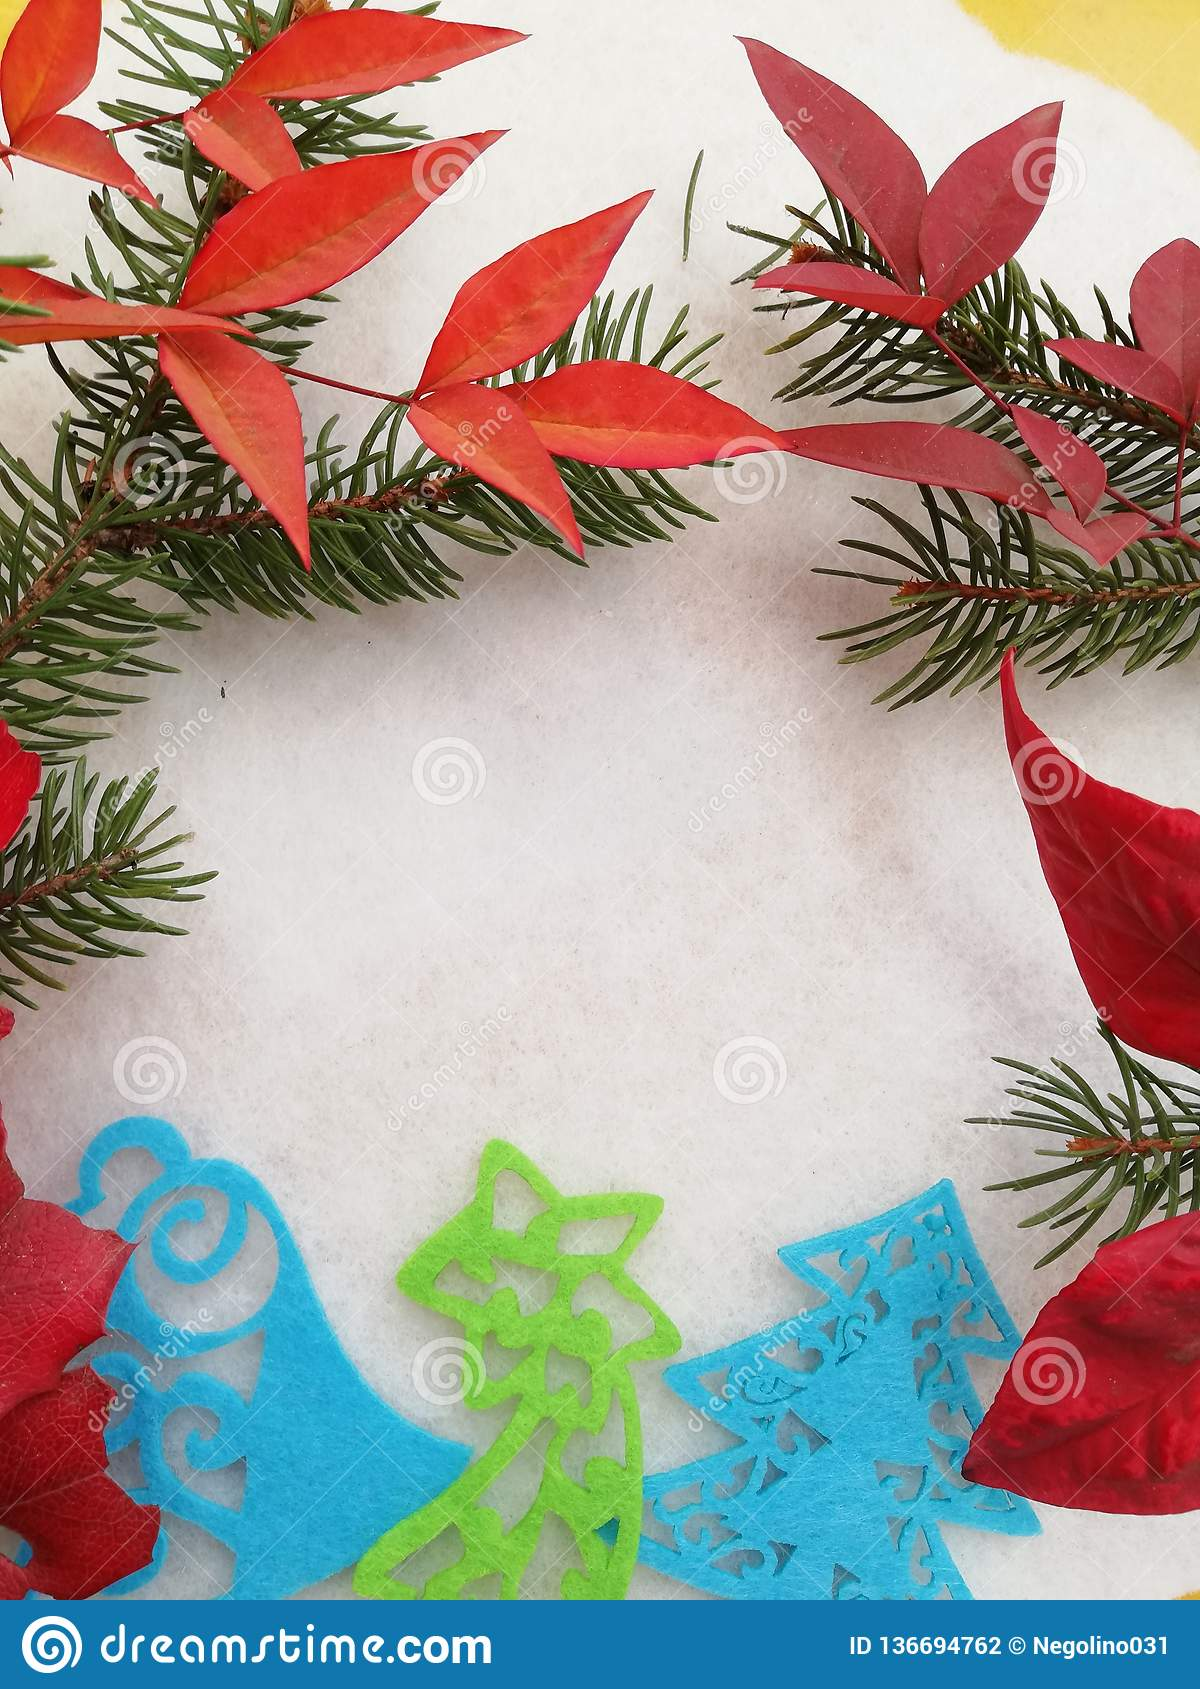 Auguri Di Buon Natale Merry Christmas.Elegant Greeting Card For Winter Holiday Stock Photo Image Of